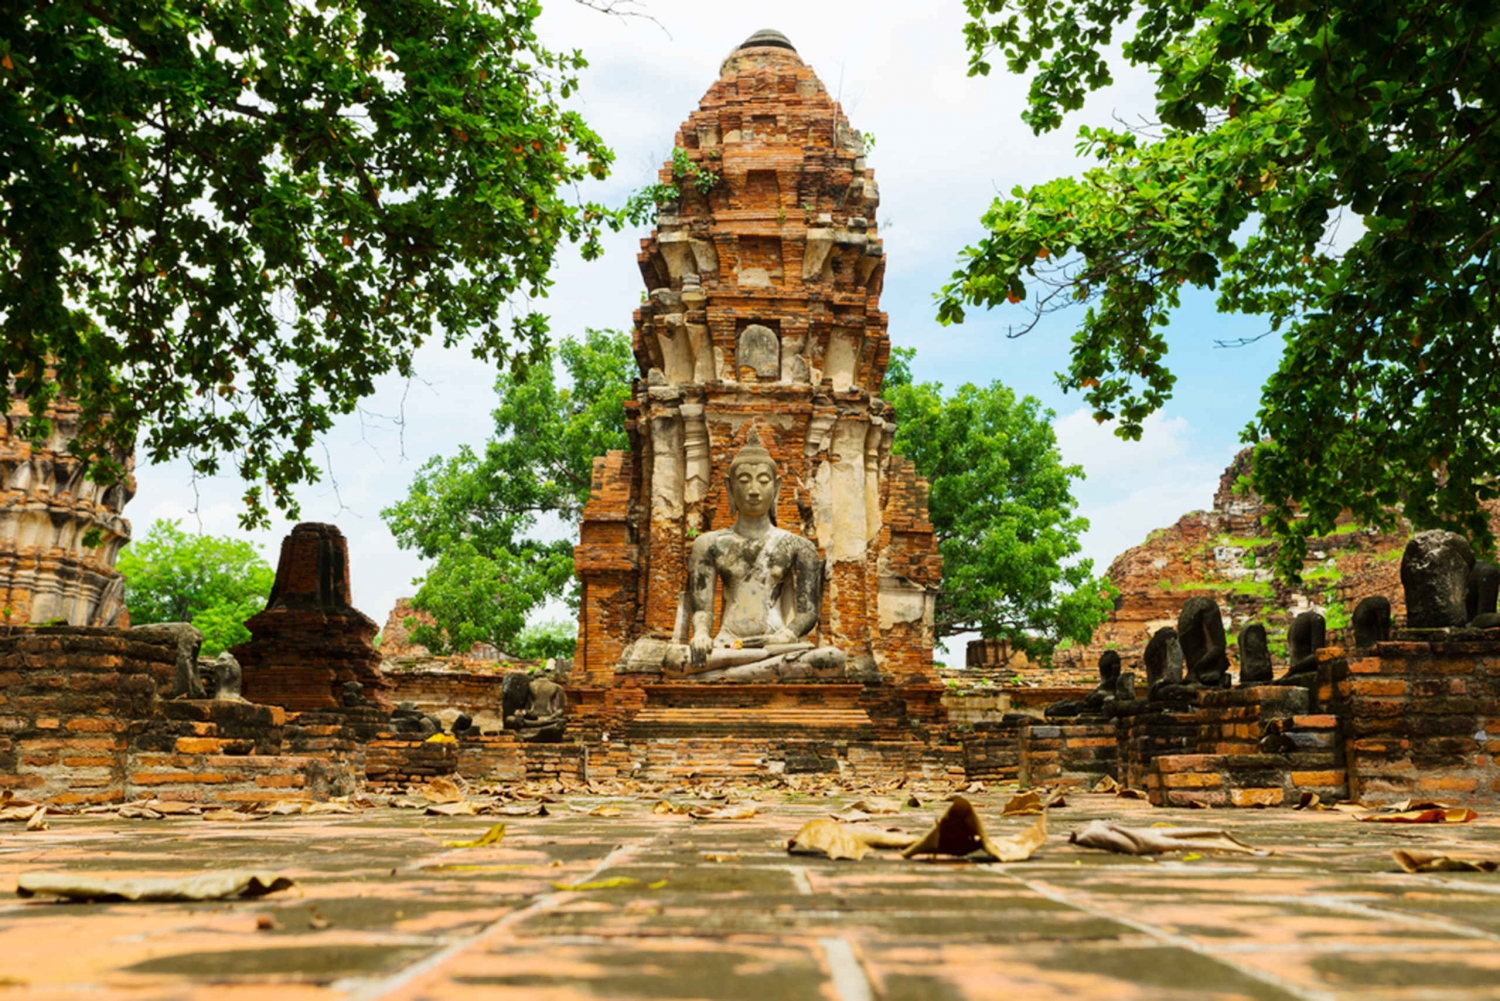 From Ayutthaya Temples & Floating Market Day Trip